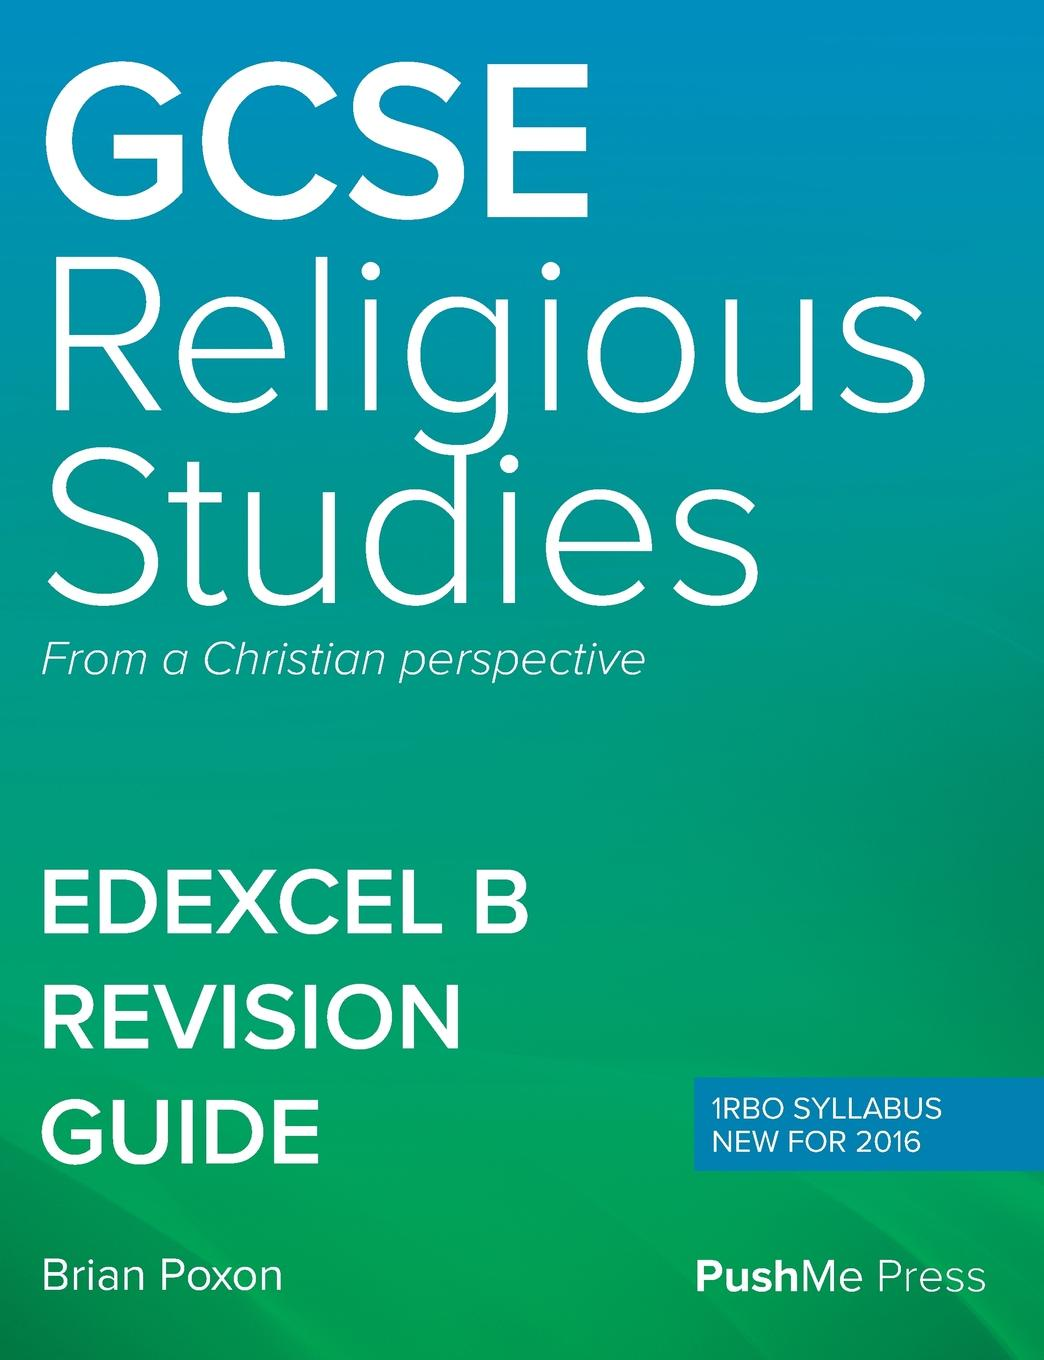 Brian Poxon GCSE (9-1) in Religious Studies REVISION GUIDE. Level 1/Level 2 from a Christian perspective PEARSON EDEXCEL B (1RB0) цена 2017